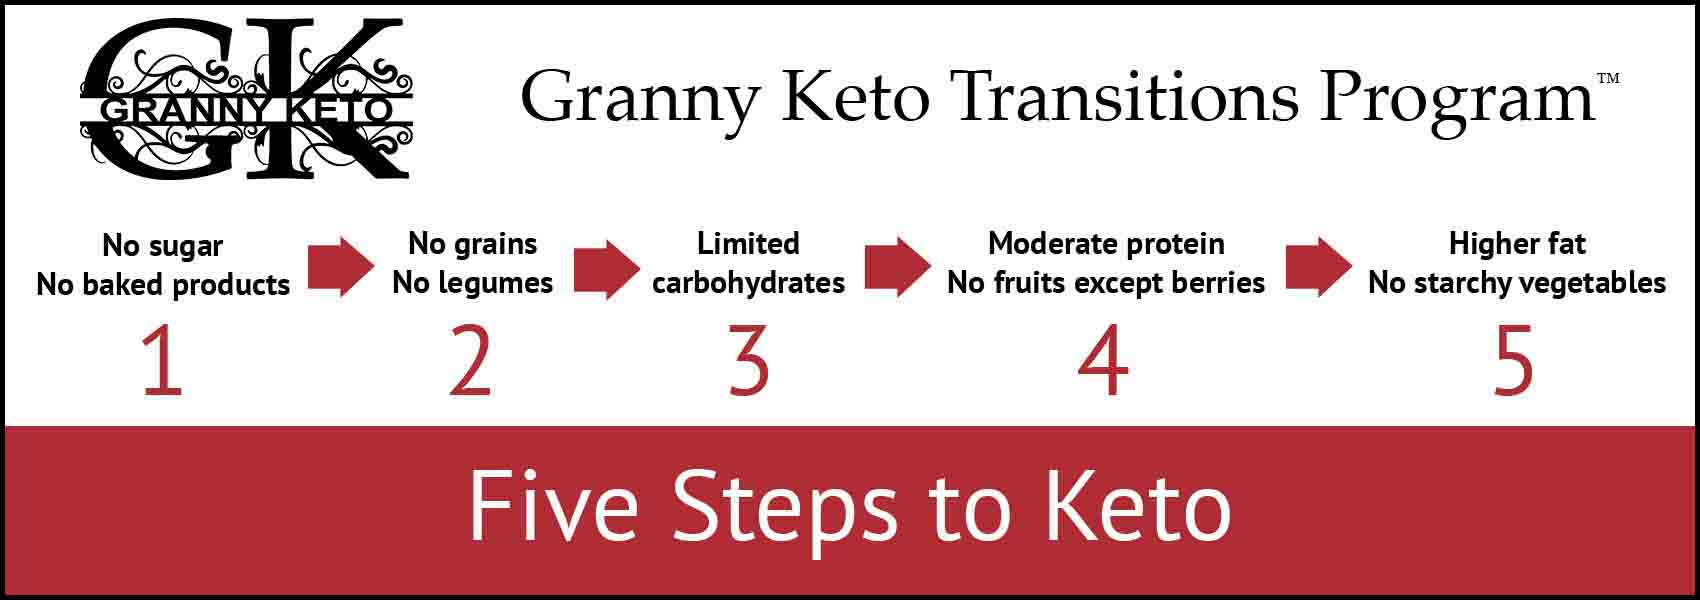 Granny Keto Transitions Program™: Five Steps to Keto